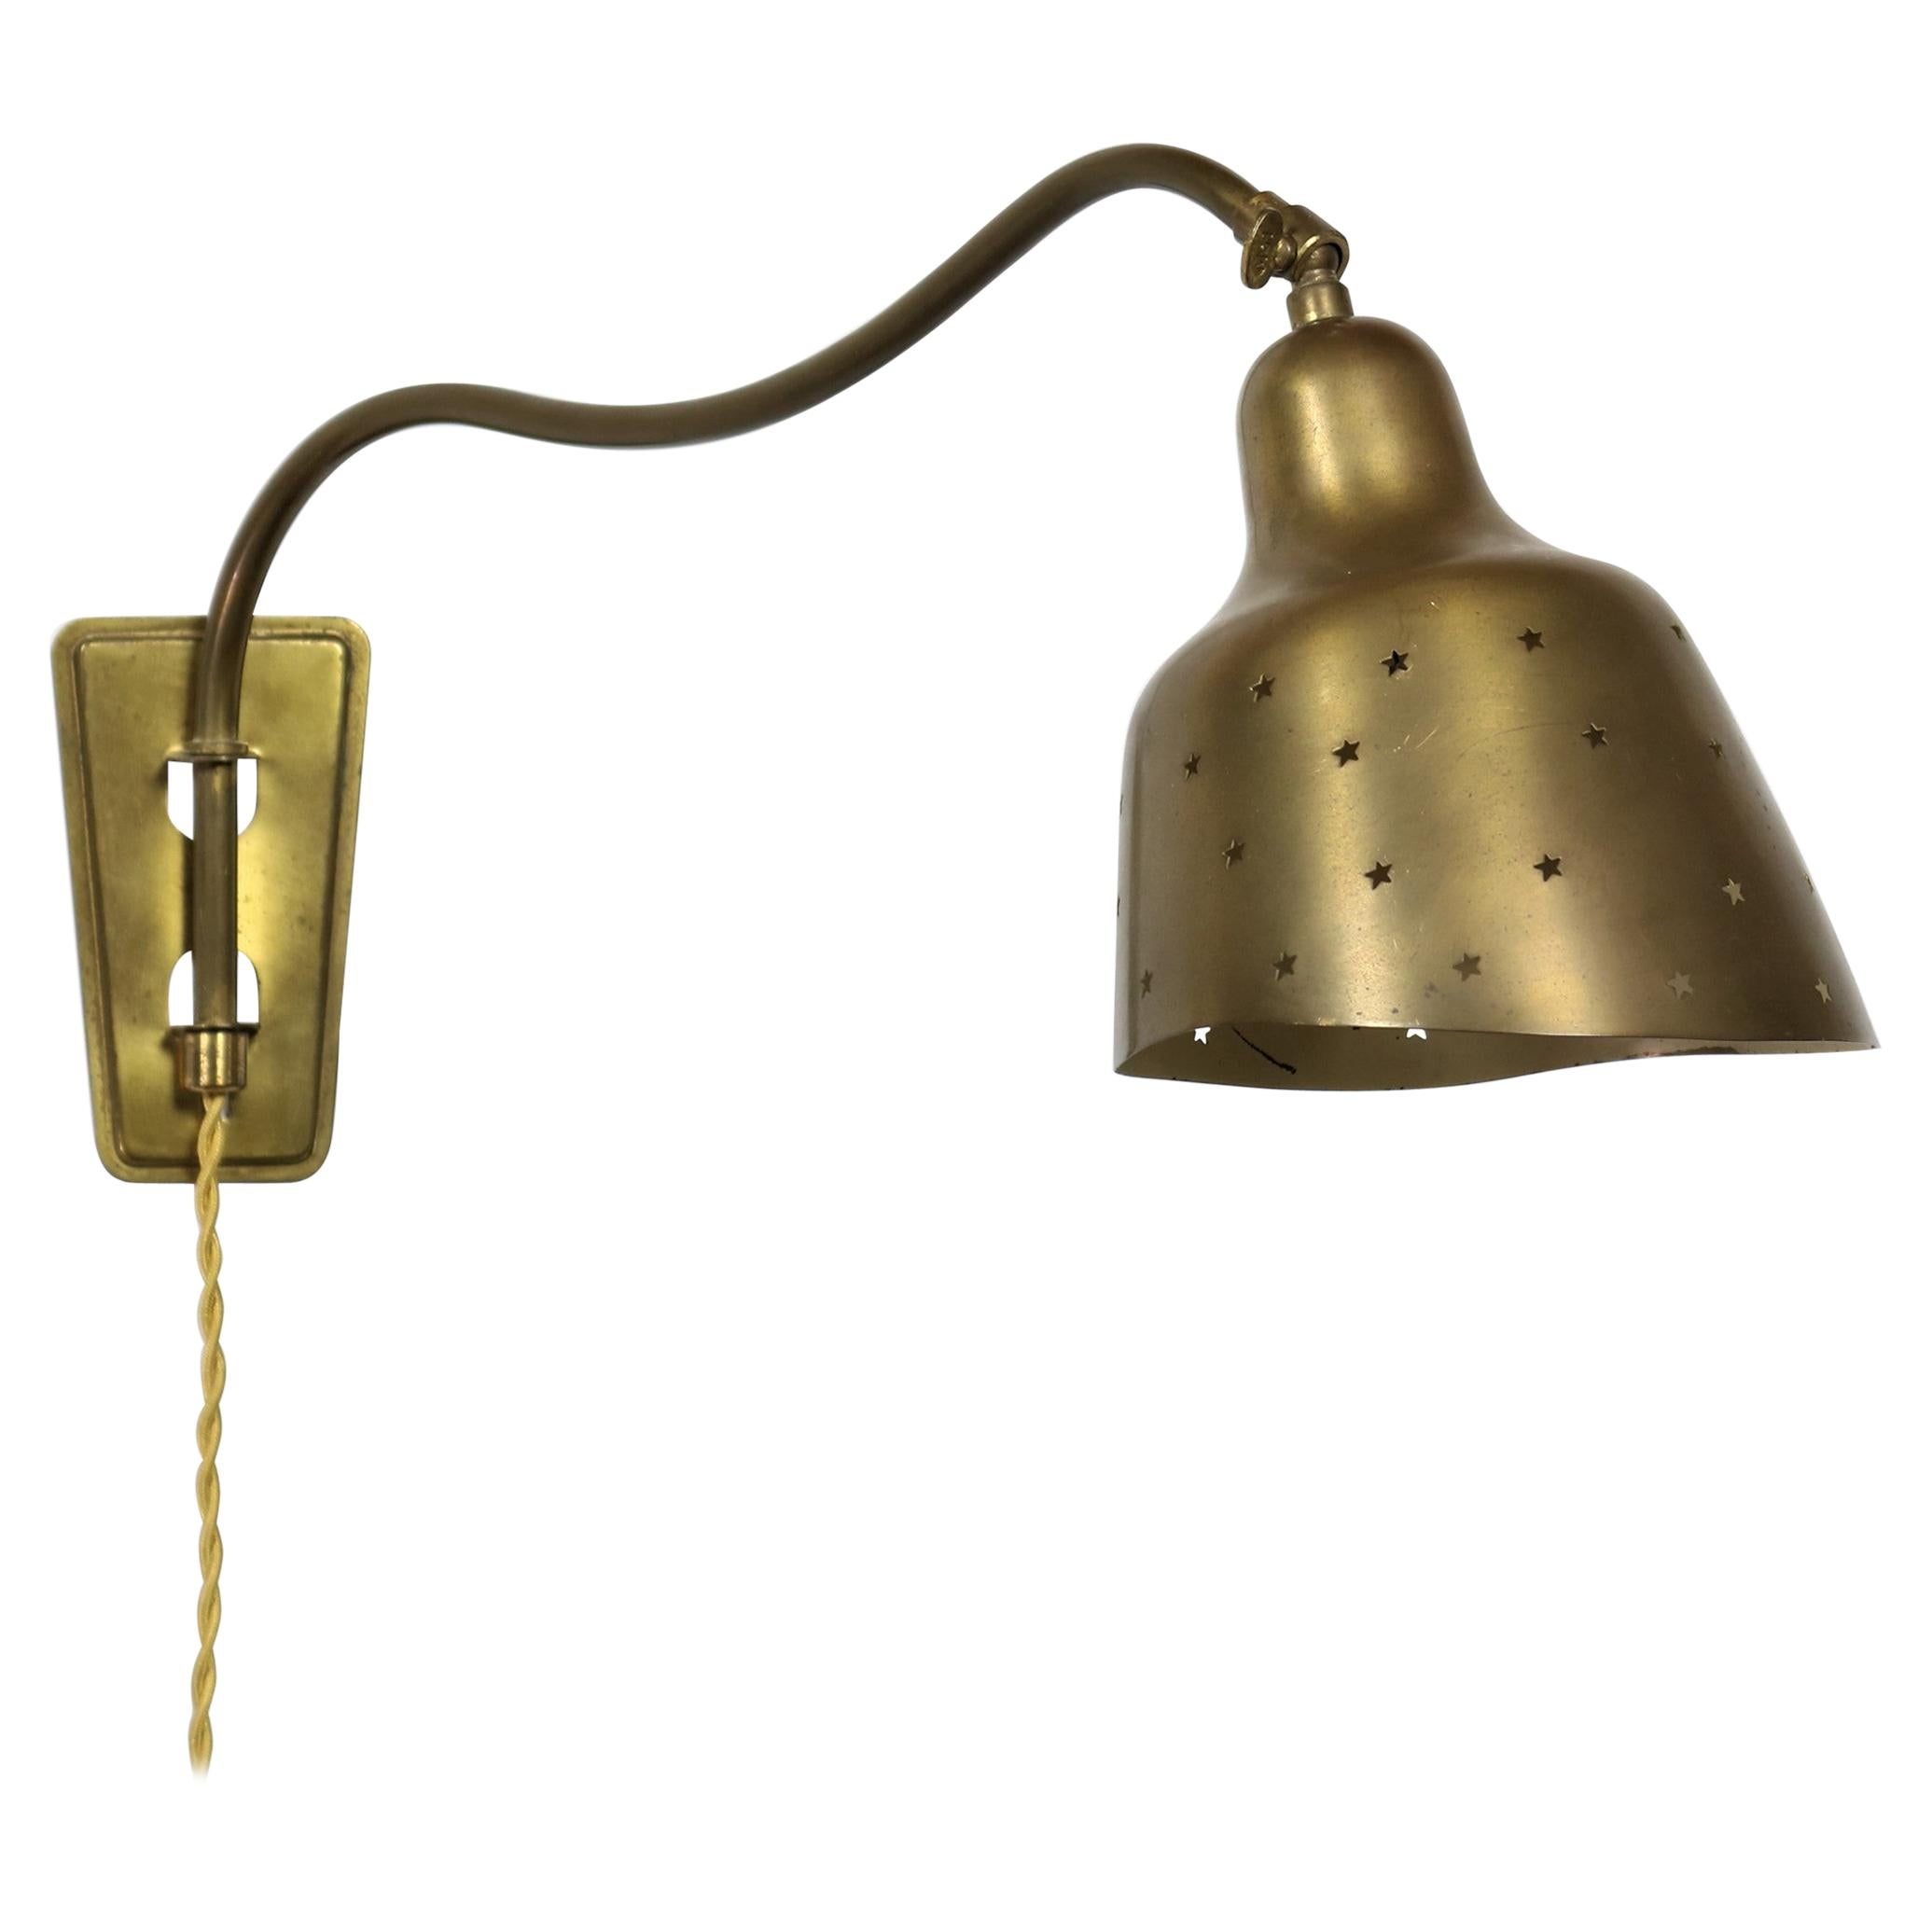 Danish Modern Brass Wall Lamp Made at Fog & Mørup Copenhagen, 1950s